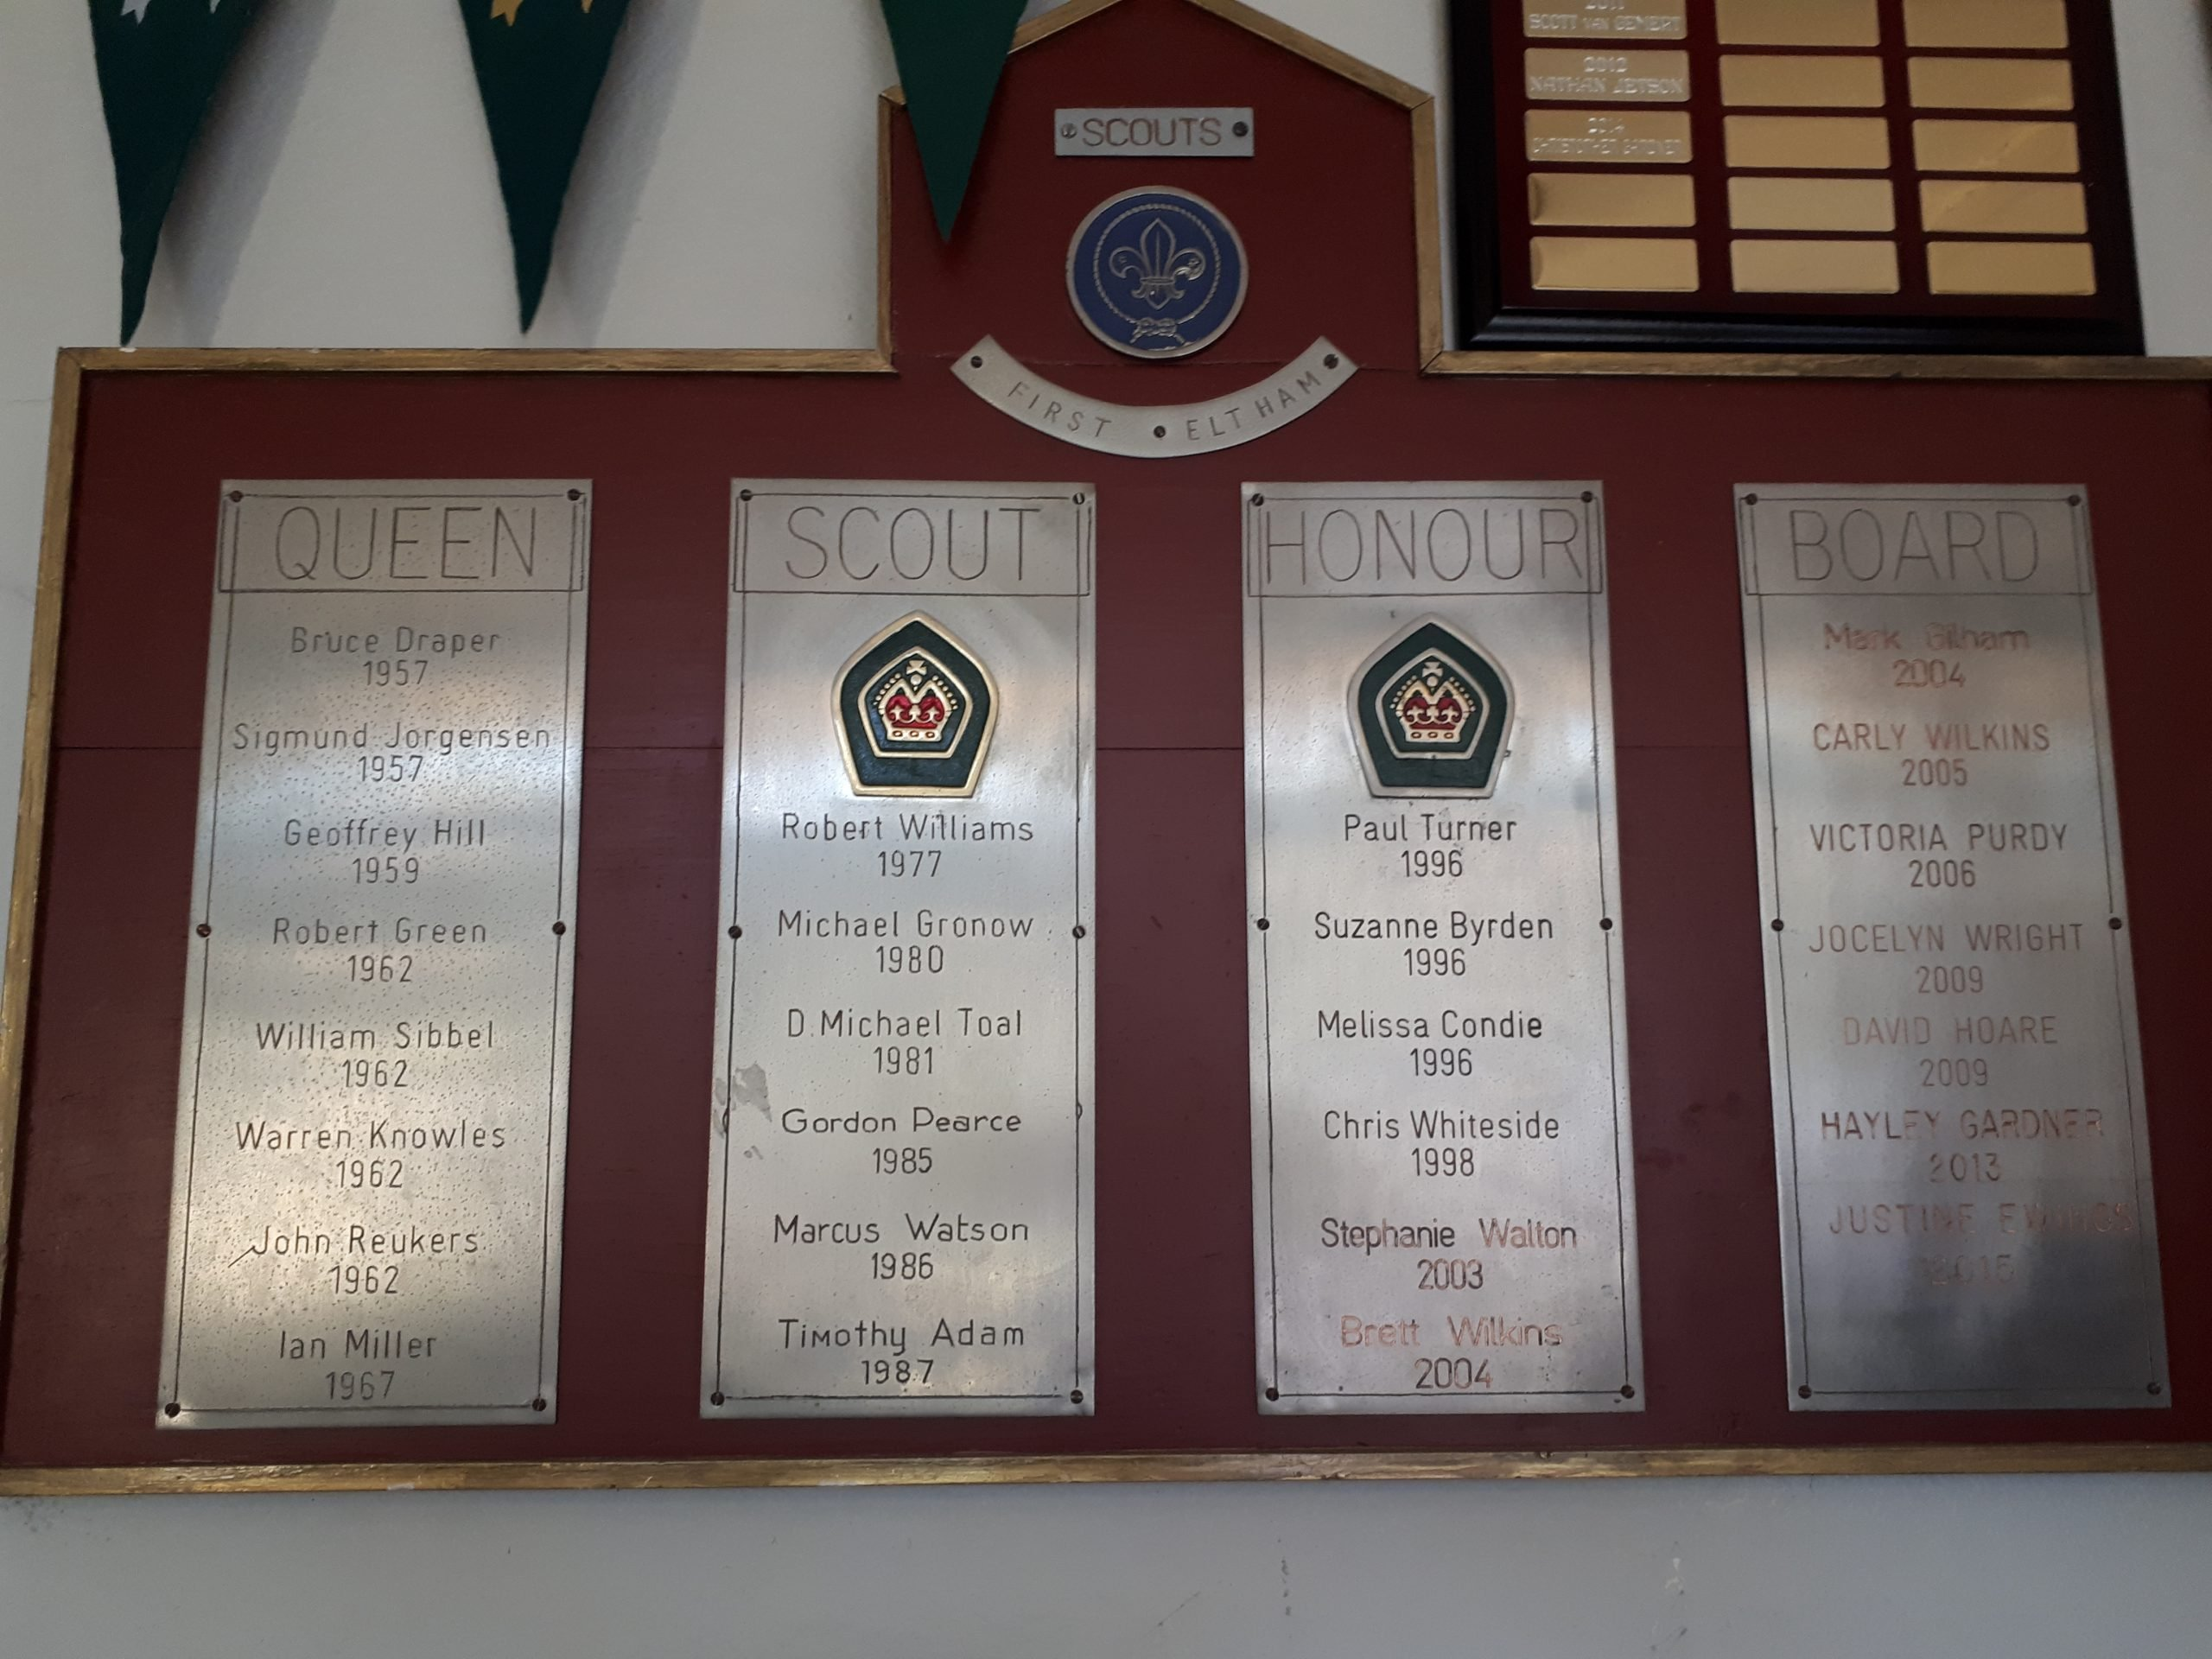 Queen Scout Honour Board at 1st Eltham Scout Hall.  Photo credit Su Perrins